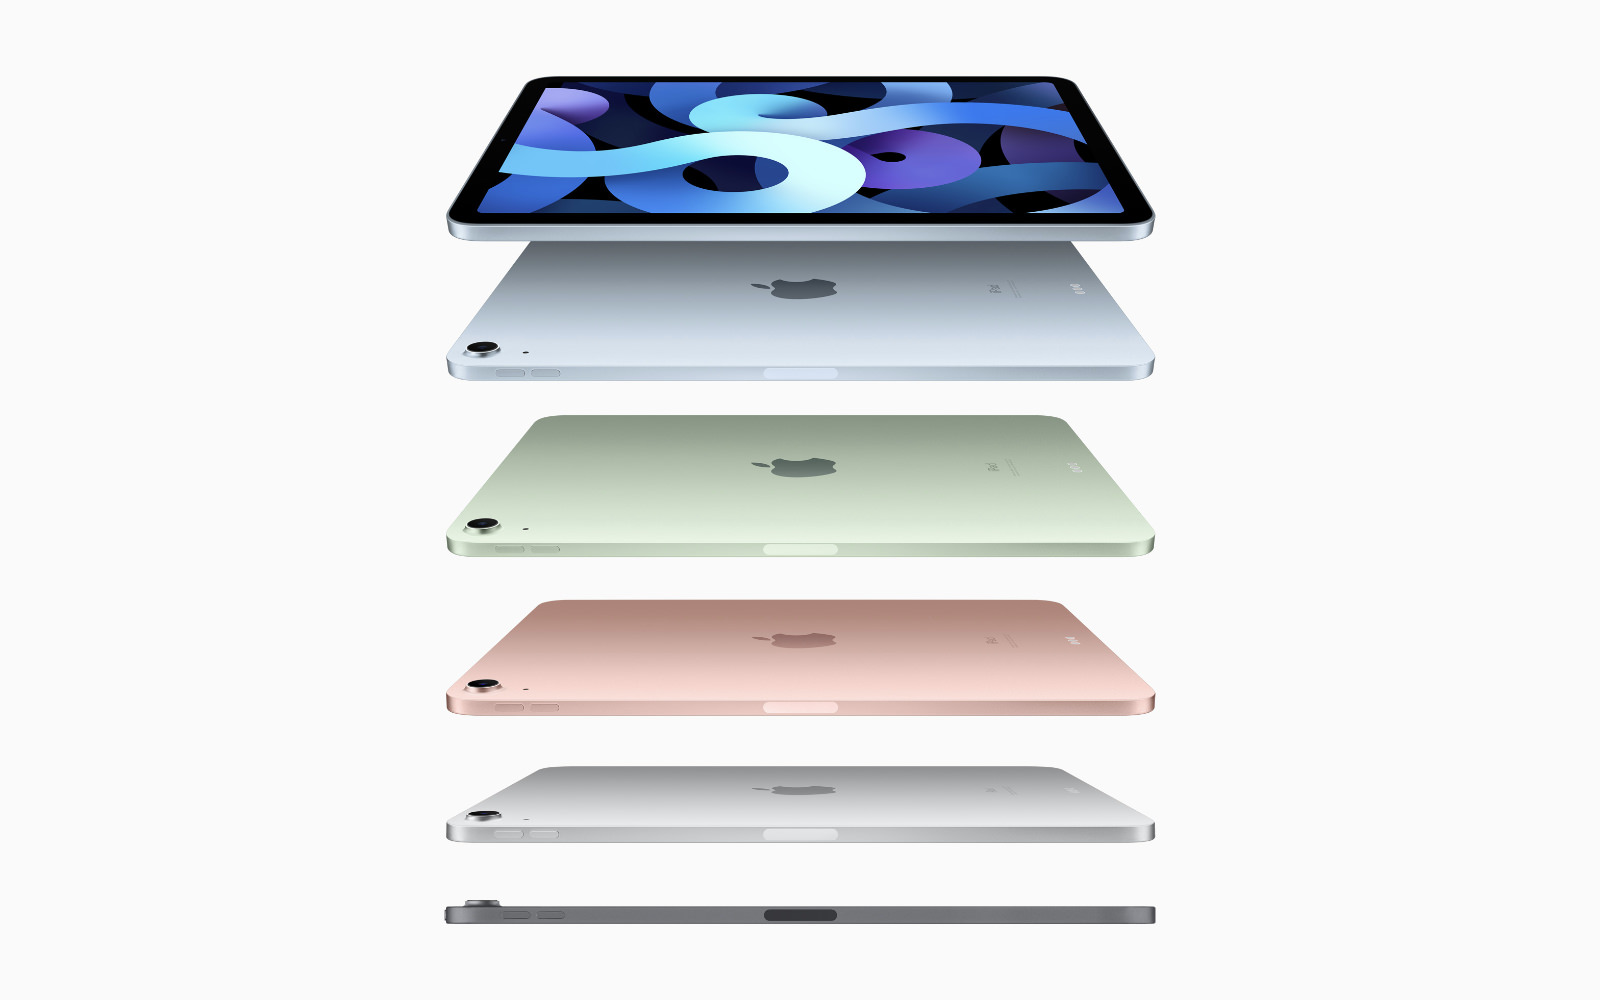 Ipad air 4thgen top